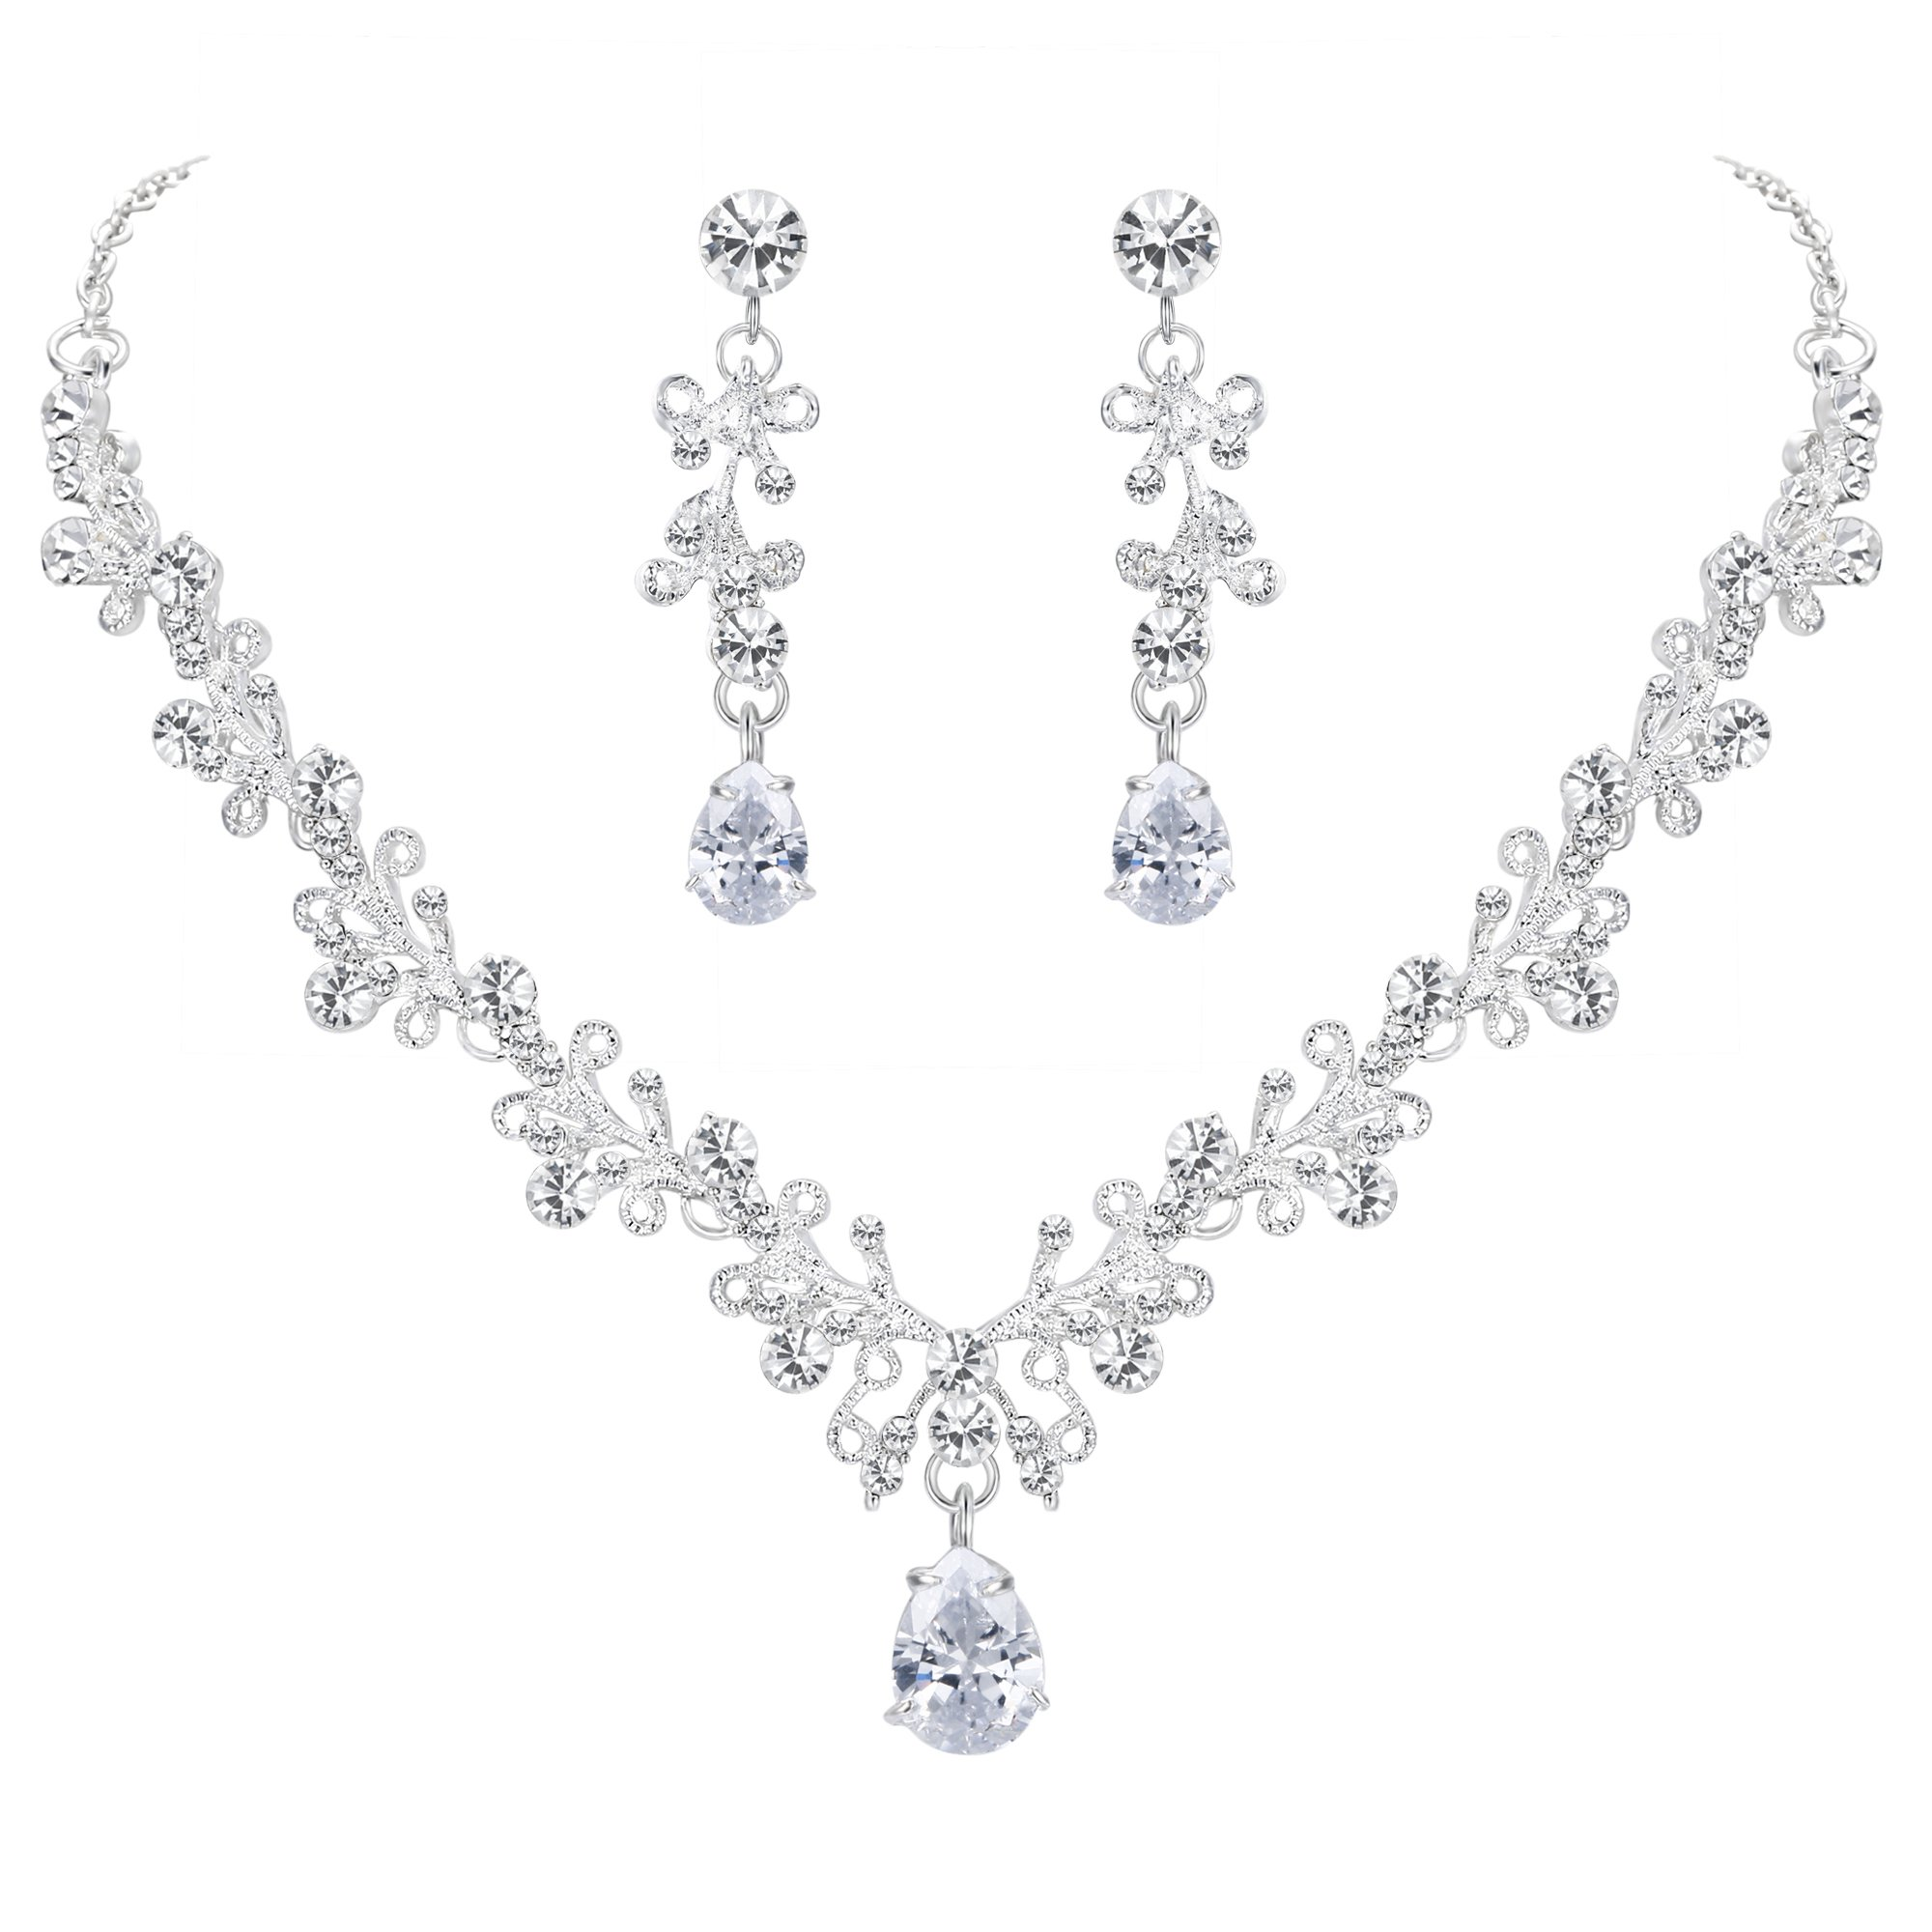 BriLove Wedding Bridal Necklace Earrings Jewelry Set CZ Crystal Leaf Vine Floral Scroll Teardrop V-Necklace Pierced Earrings Set Clear Silver-Tone